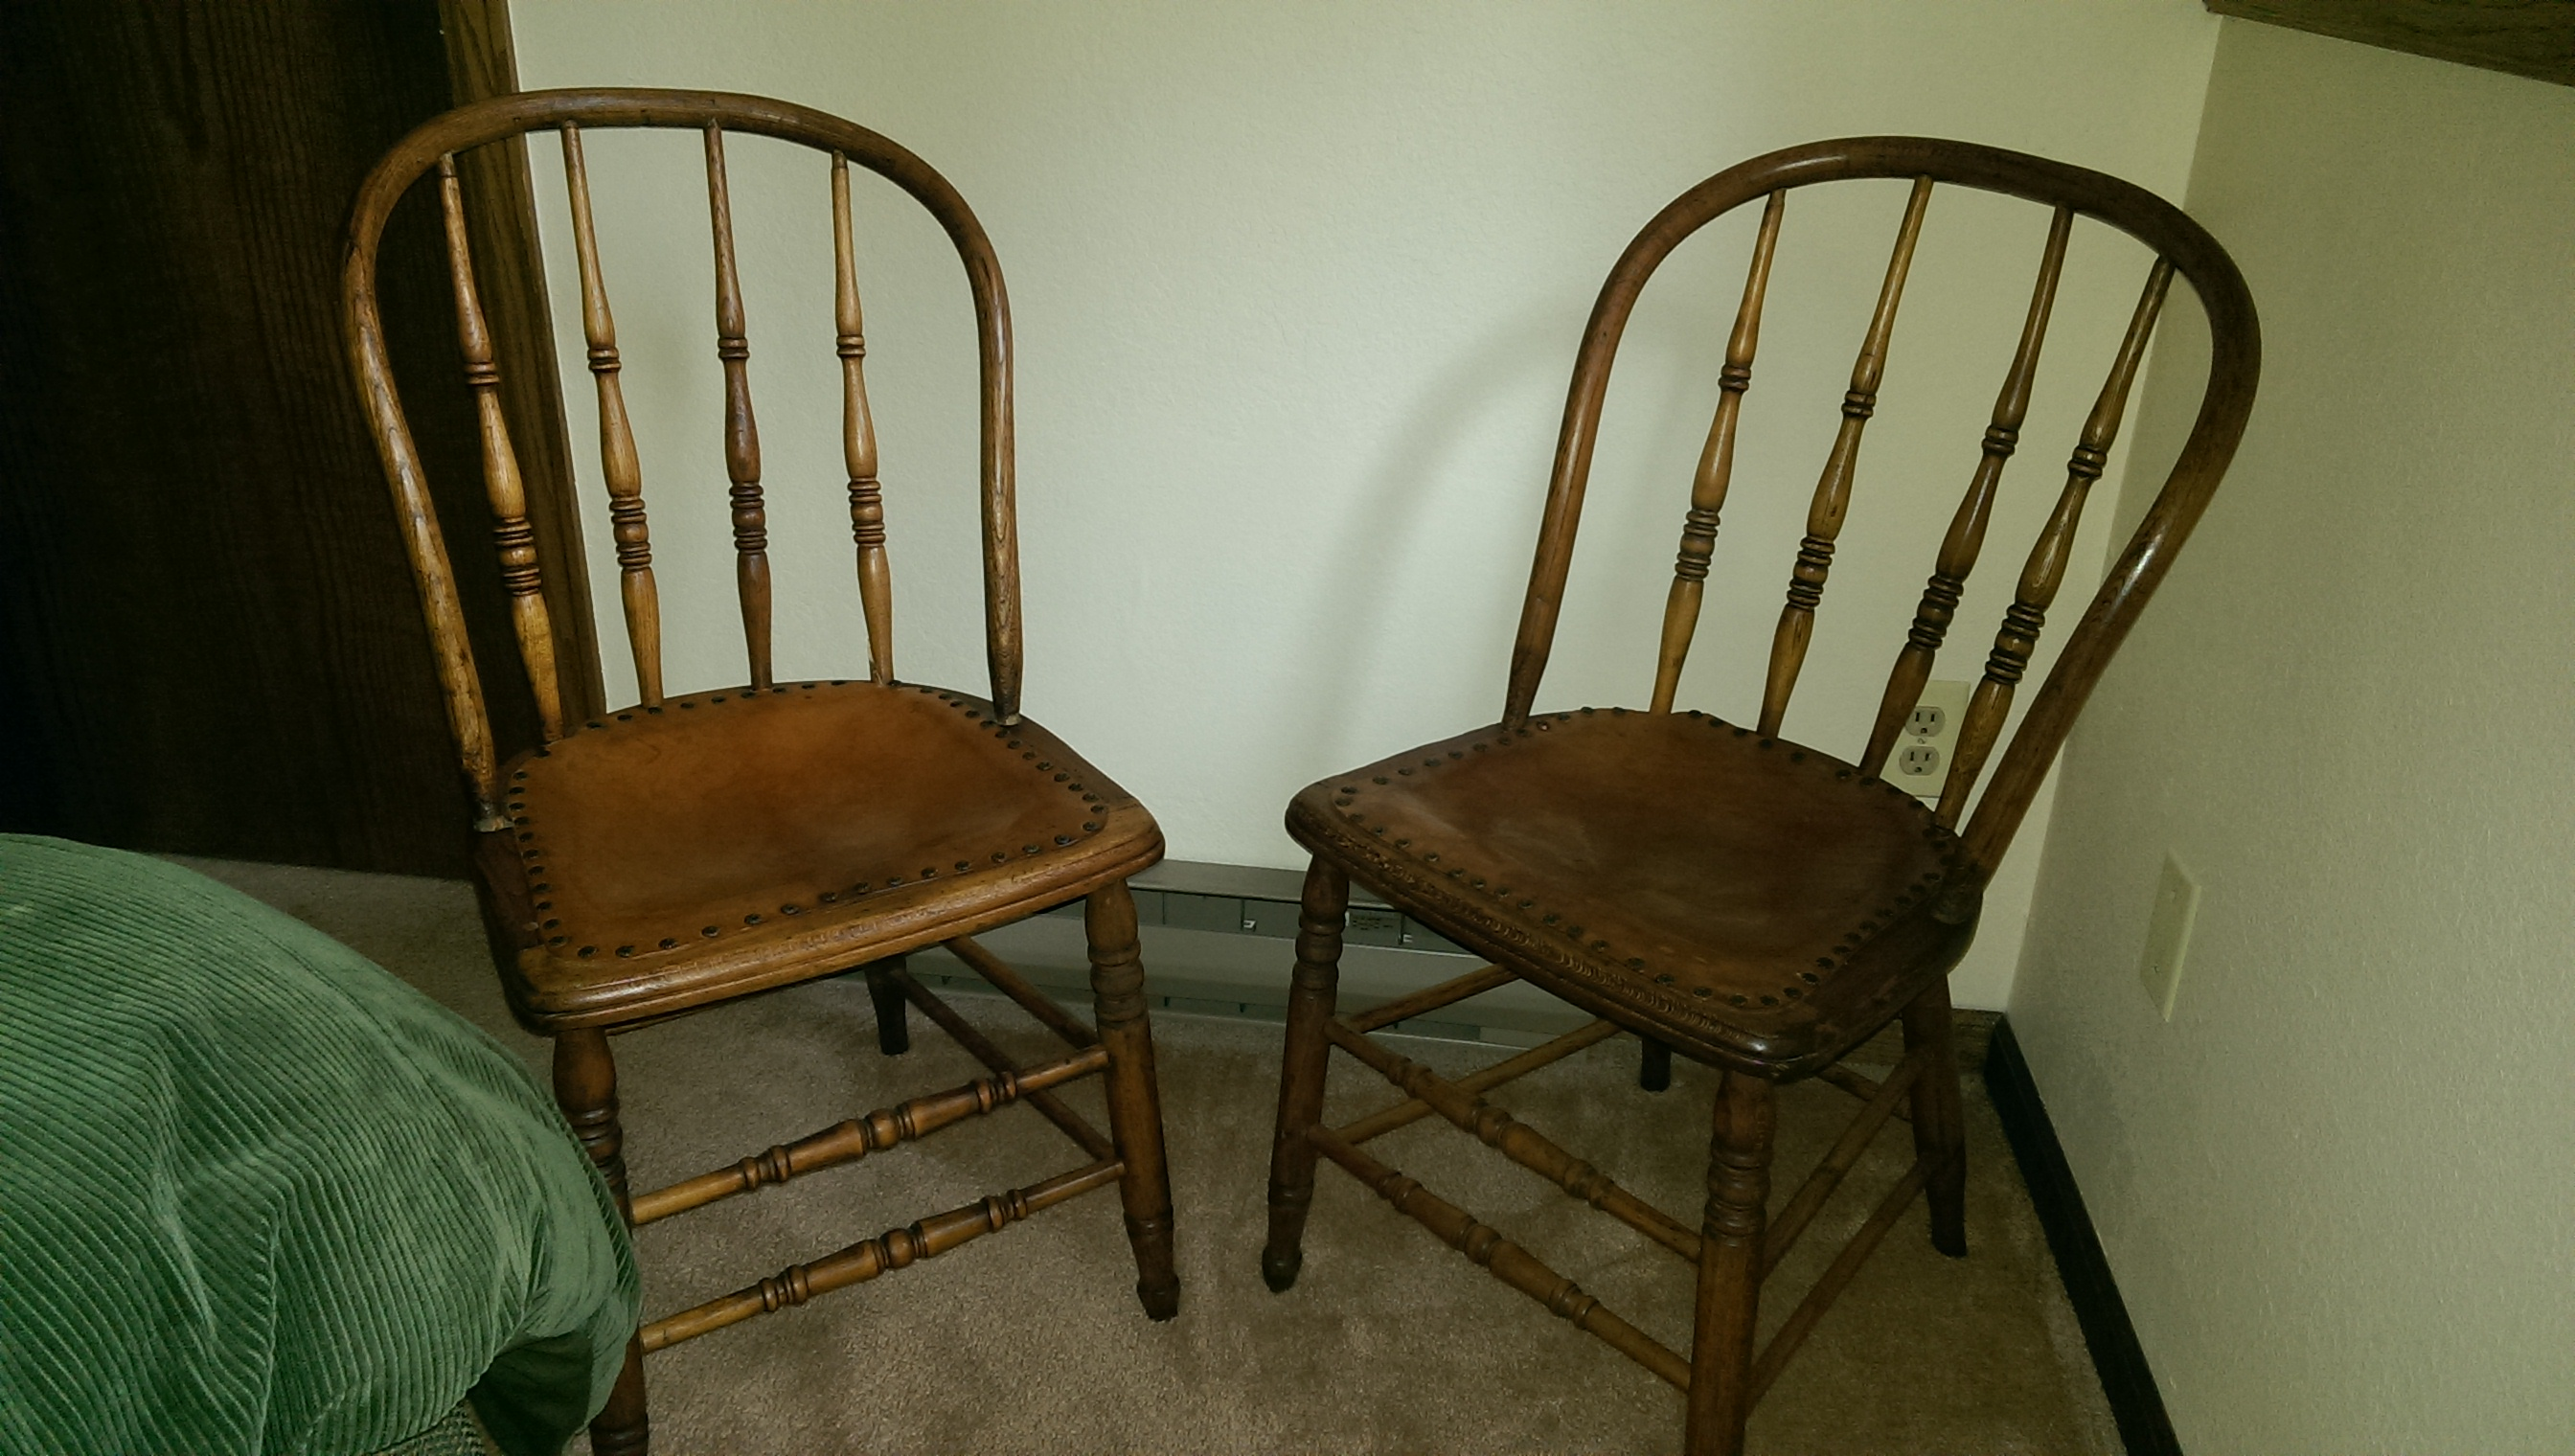 2 Antique Spindle Back Chairs With Leather Seats For Sale